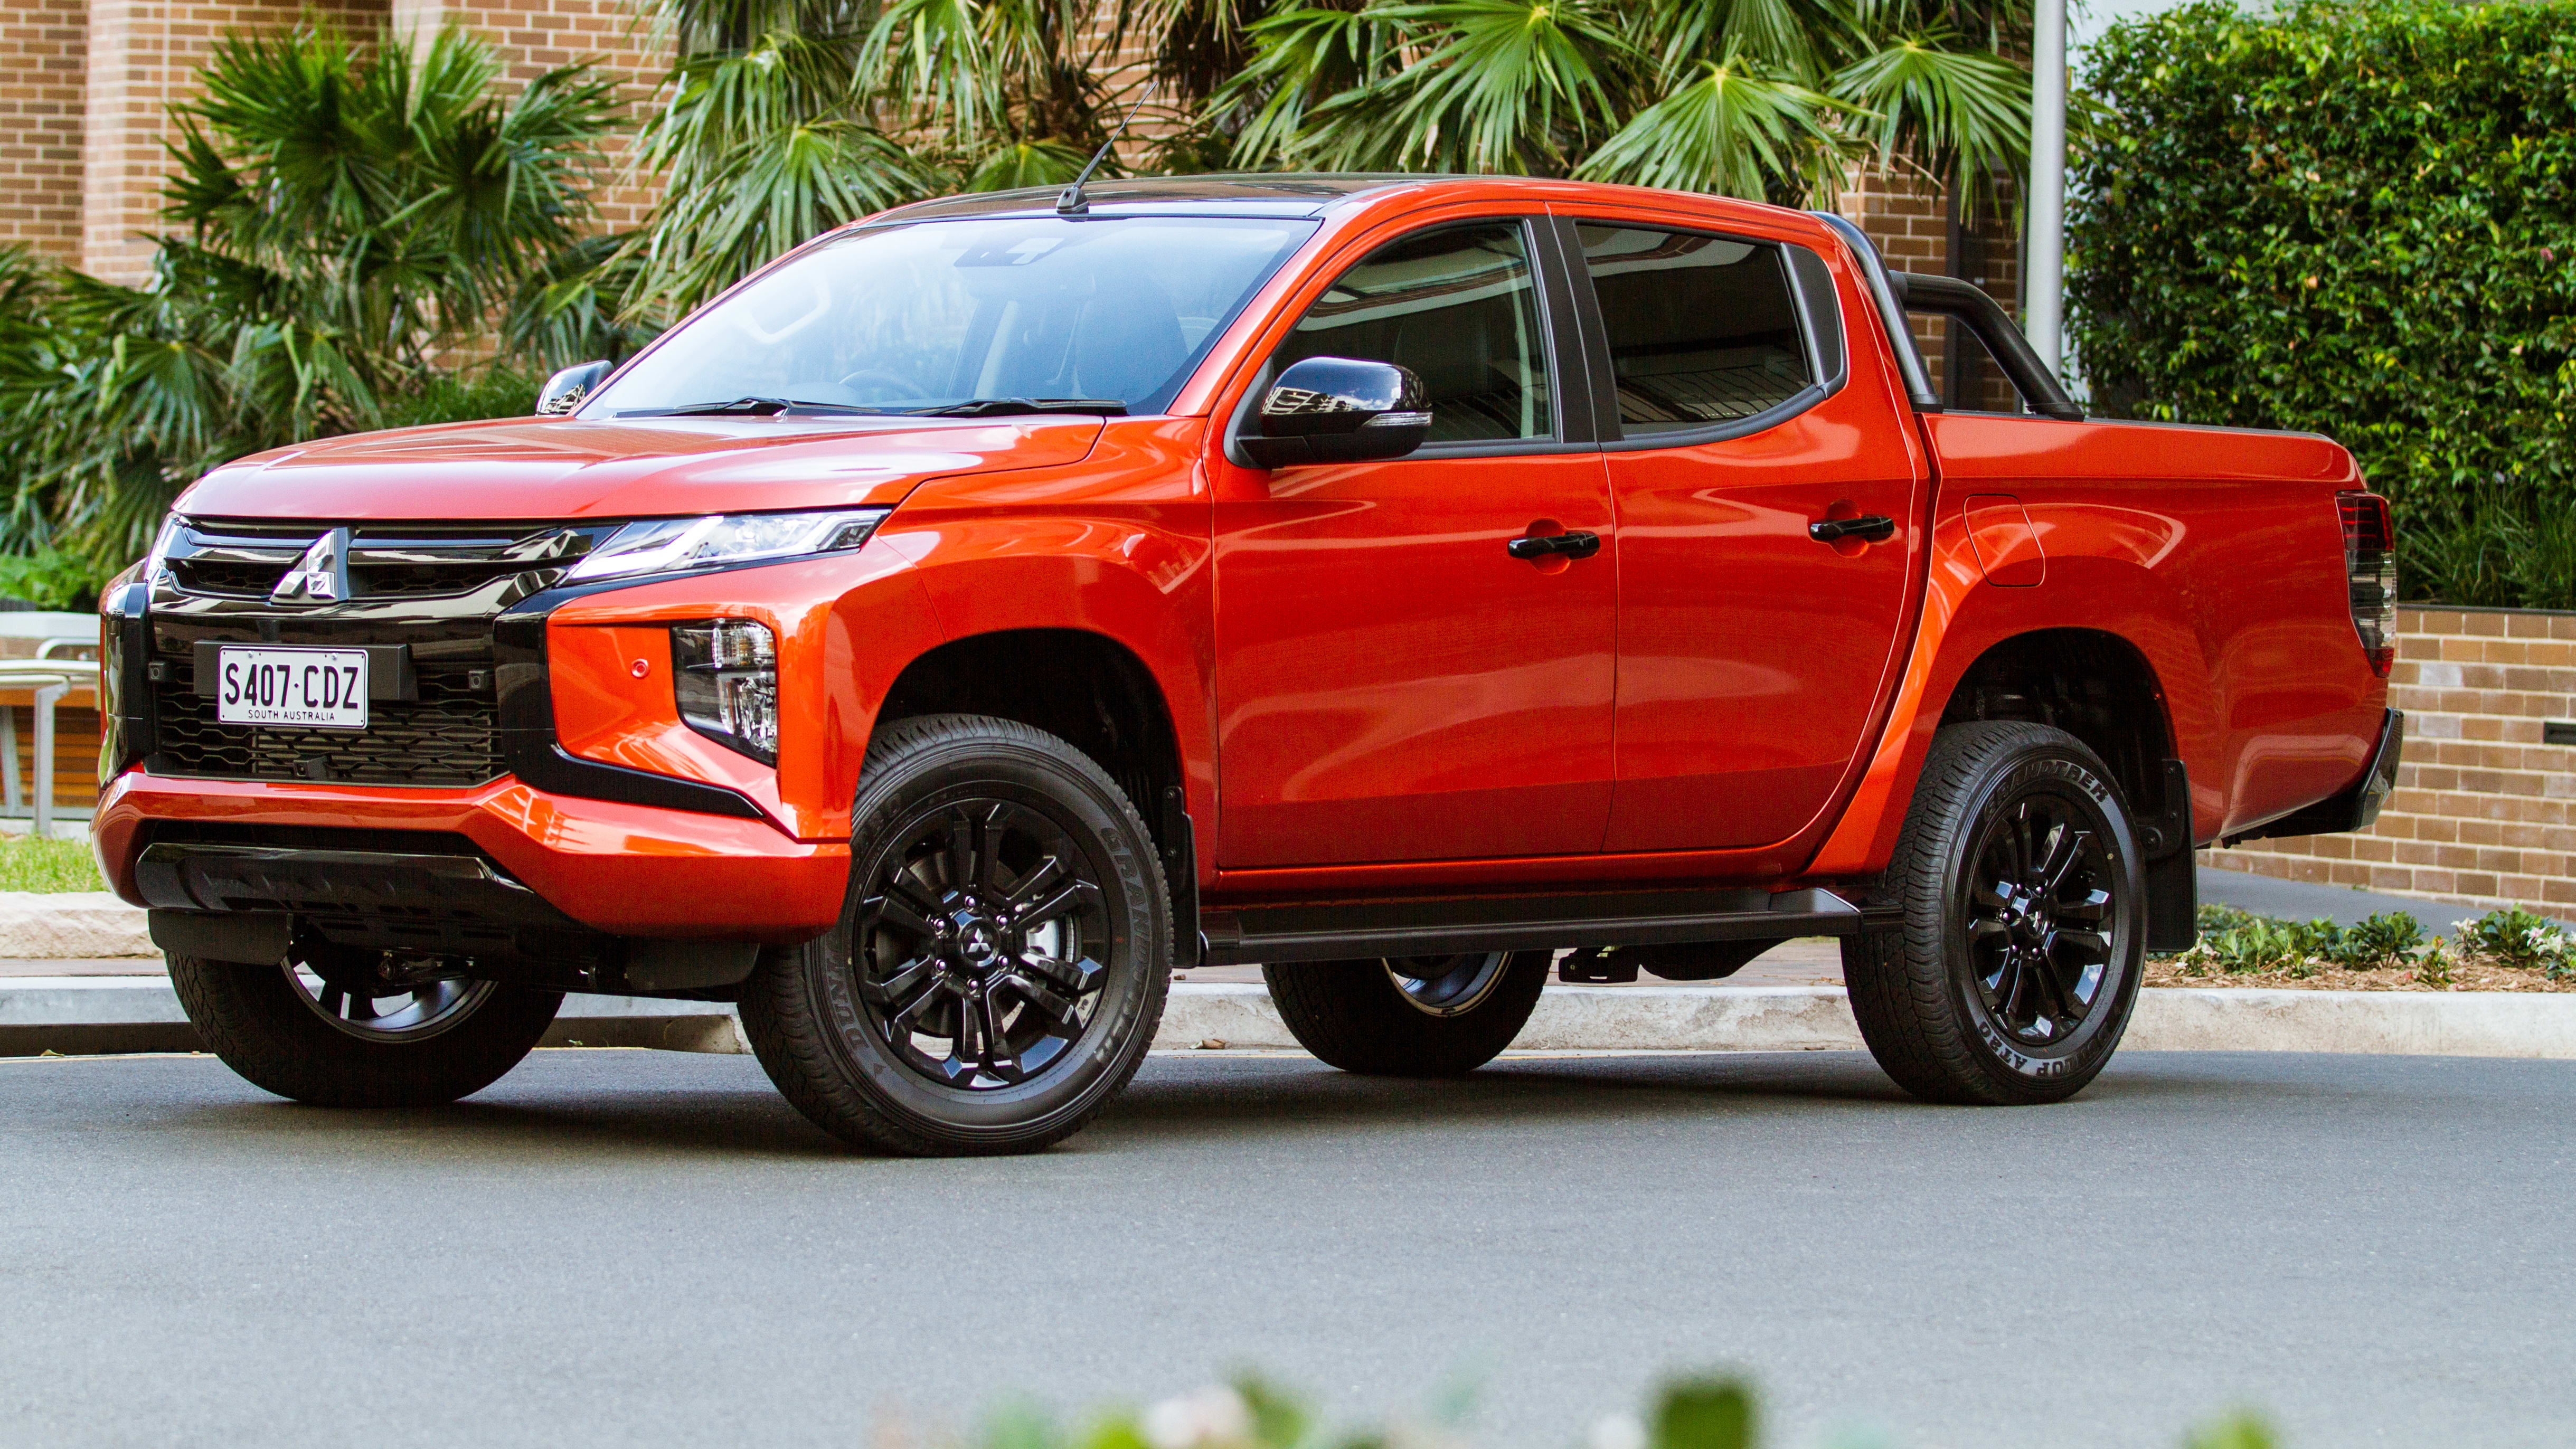 2021 Mitsubishi Triton Prices Increase For The Second Time In Months Caradvice